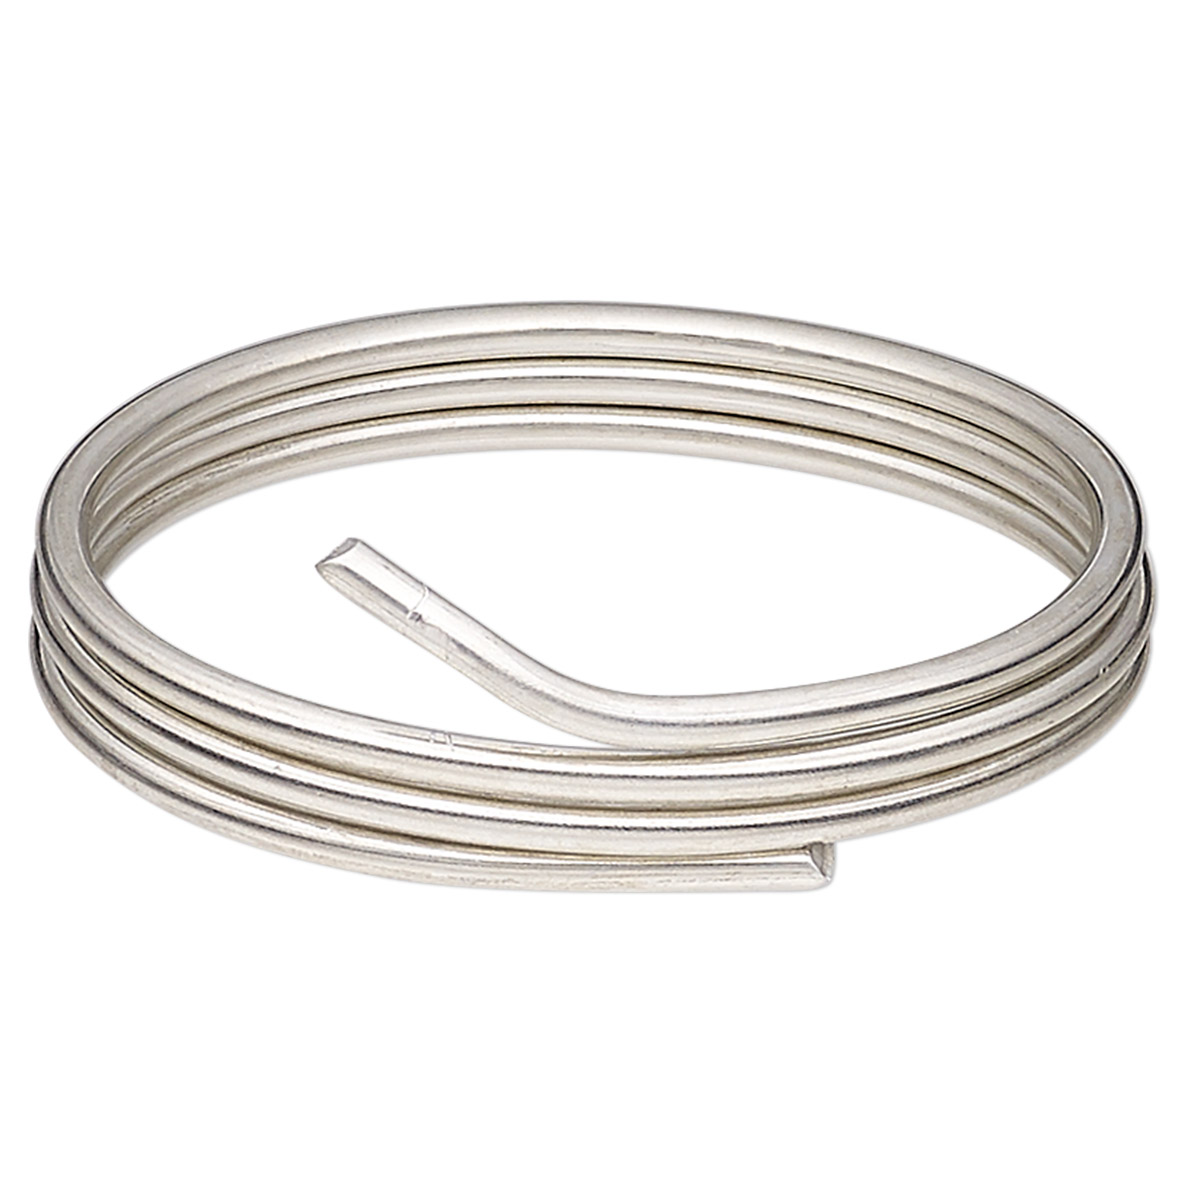 Solder wire, Canfield DGS, silver / tin / copper, 2.5-3mm. Sold per ...